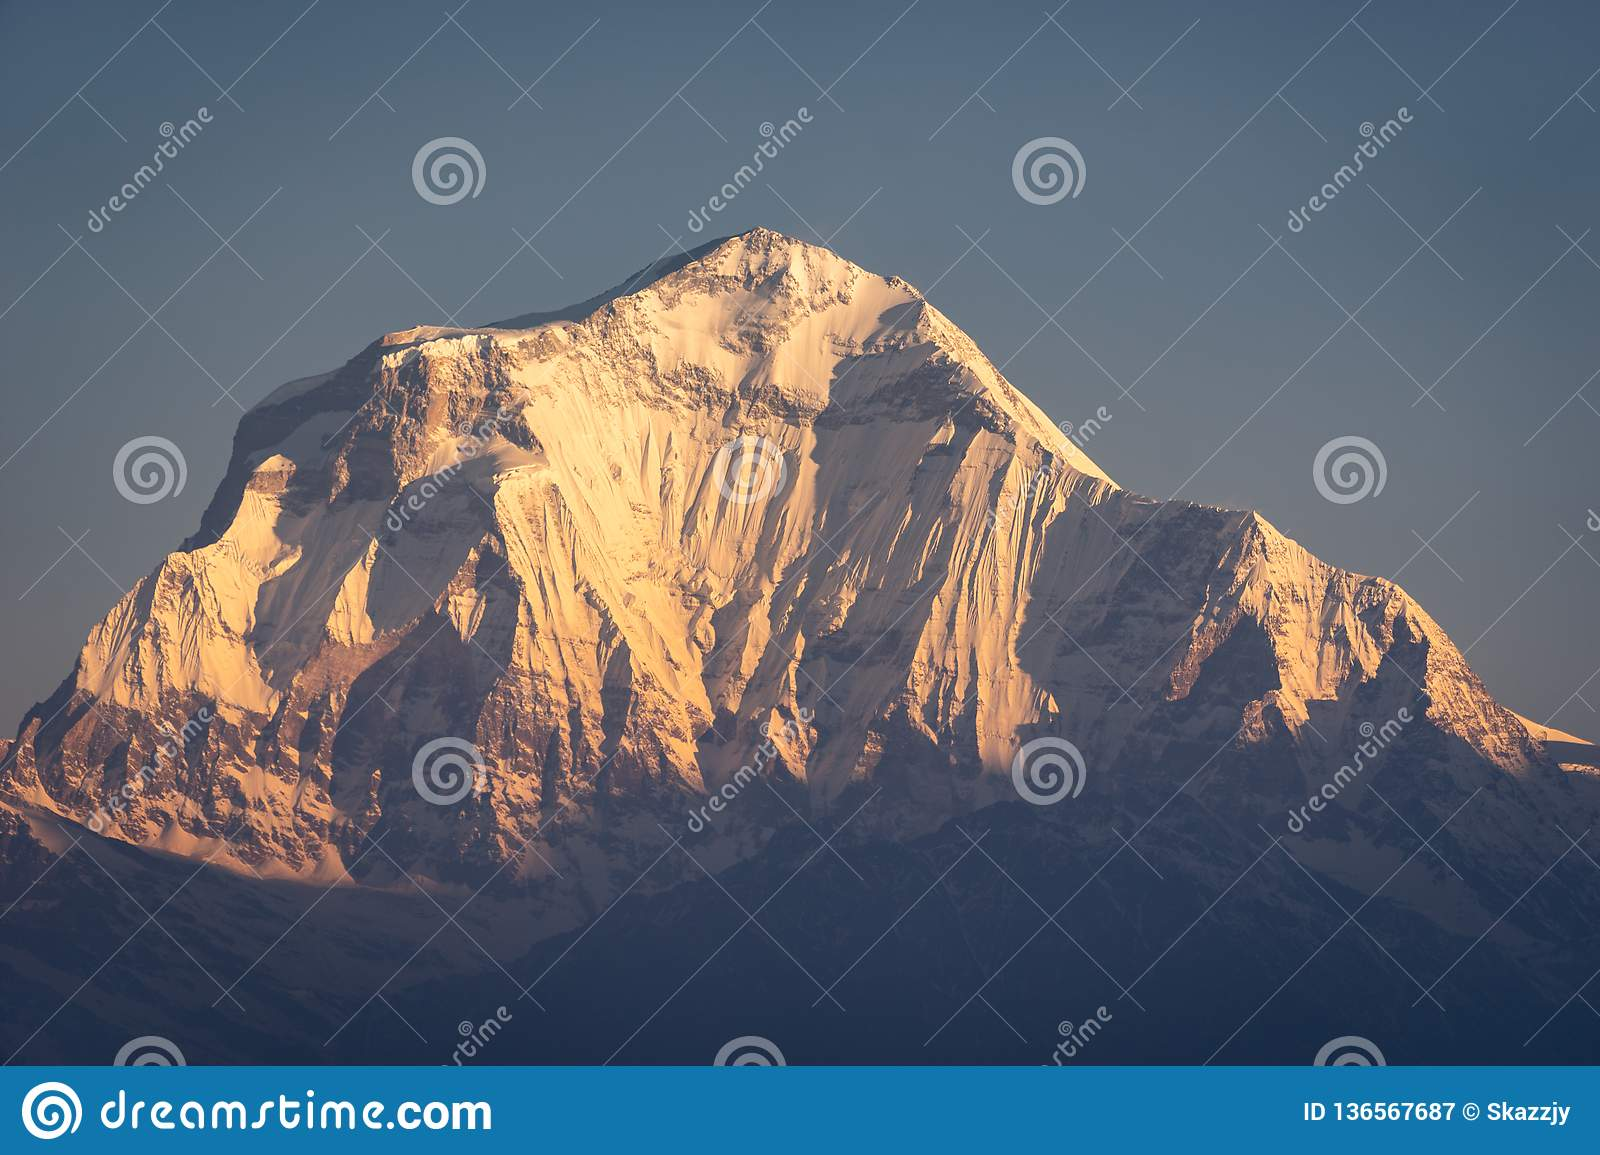 Dhaulagiri mountain peak, seventh highest peak in the world in a morning sunrise, Annapurna range, Himalayas mountain ,Nepal